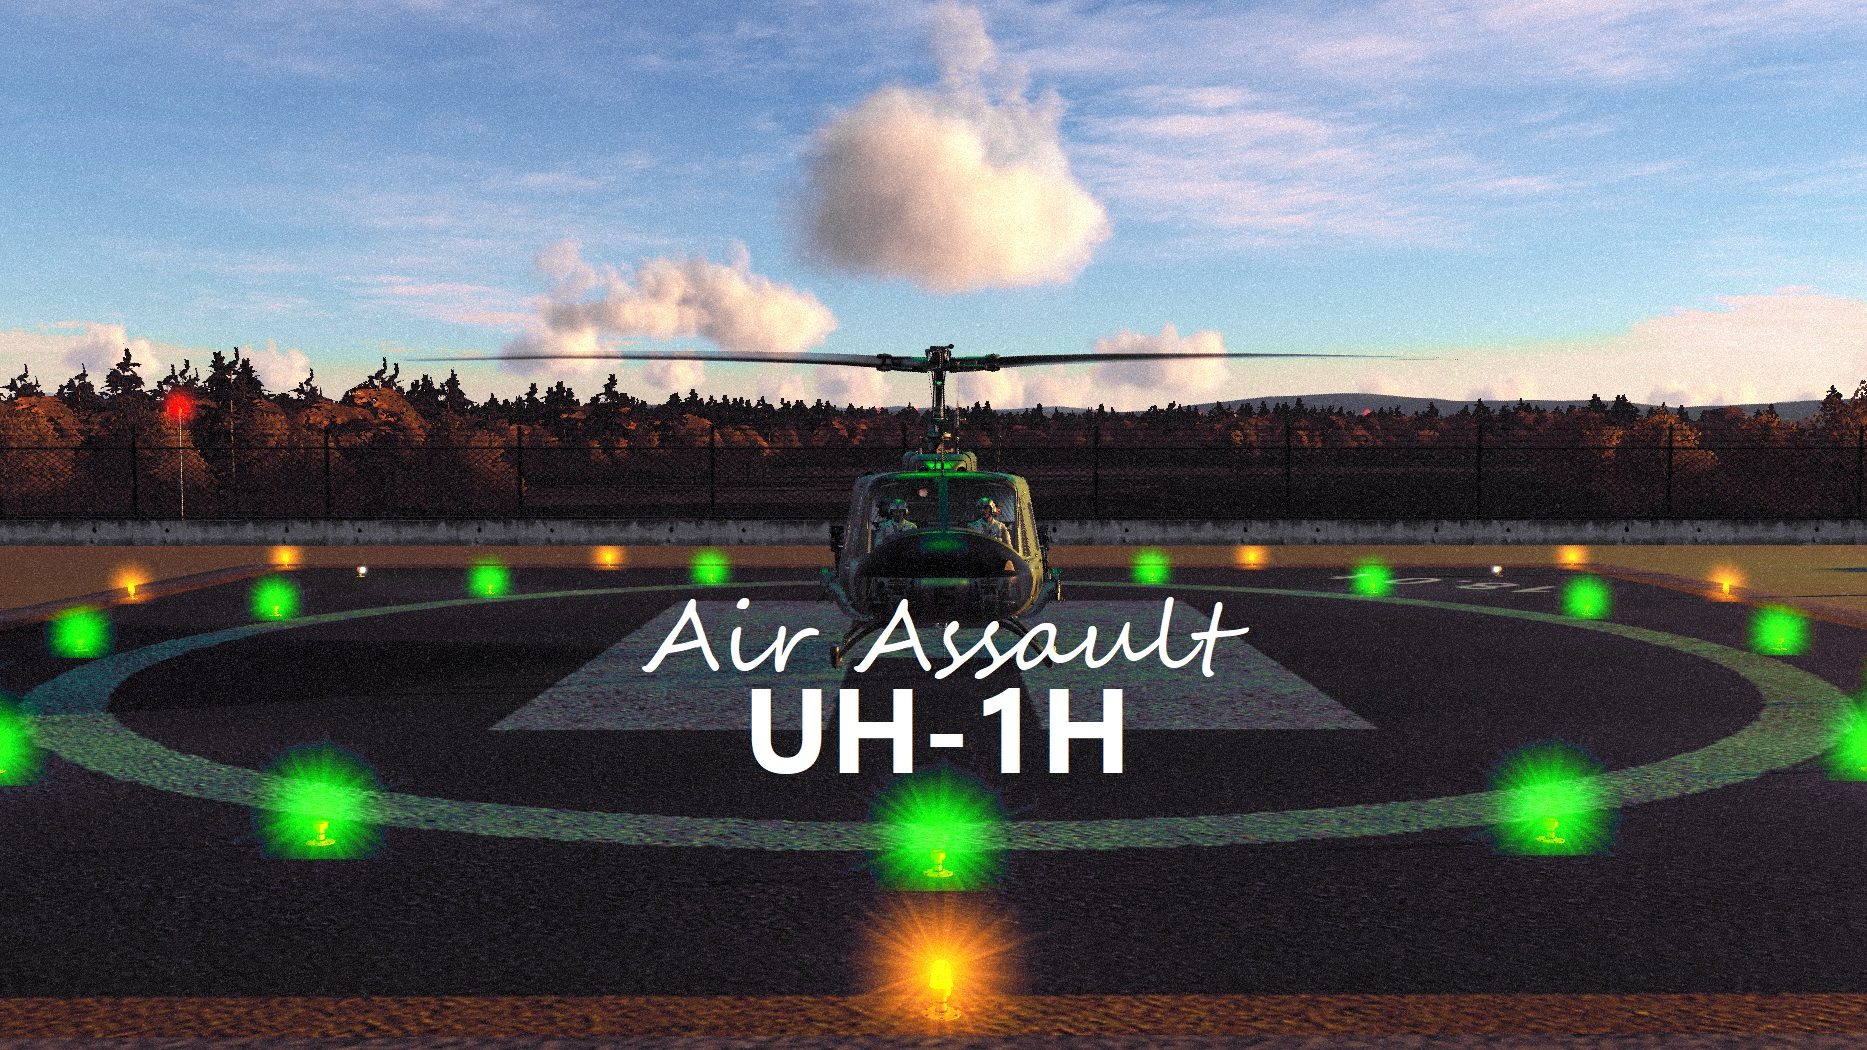 UH-1H Saratov Air Assault v1.0